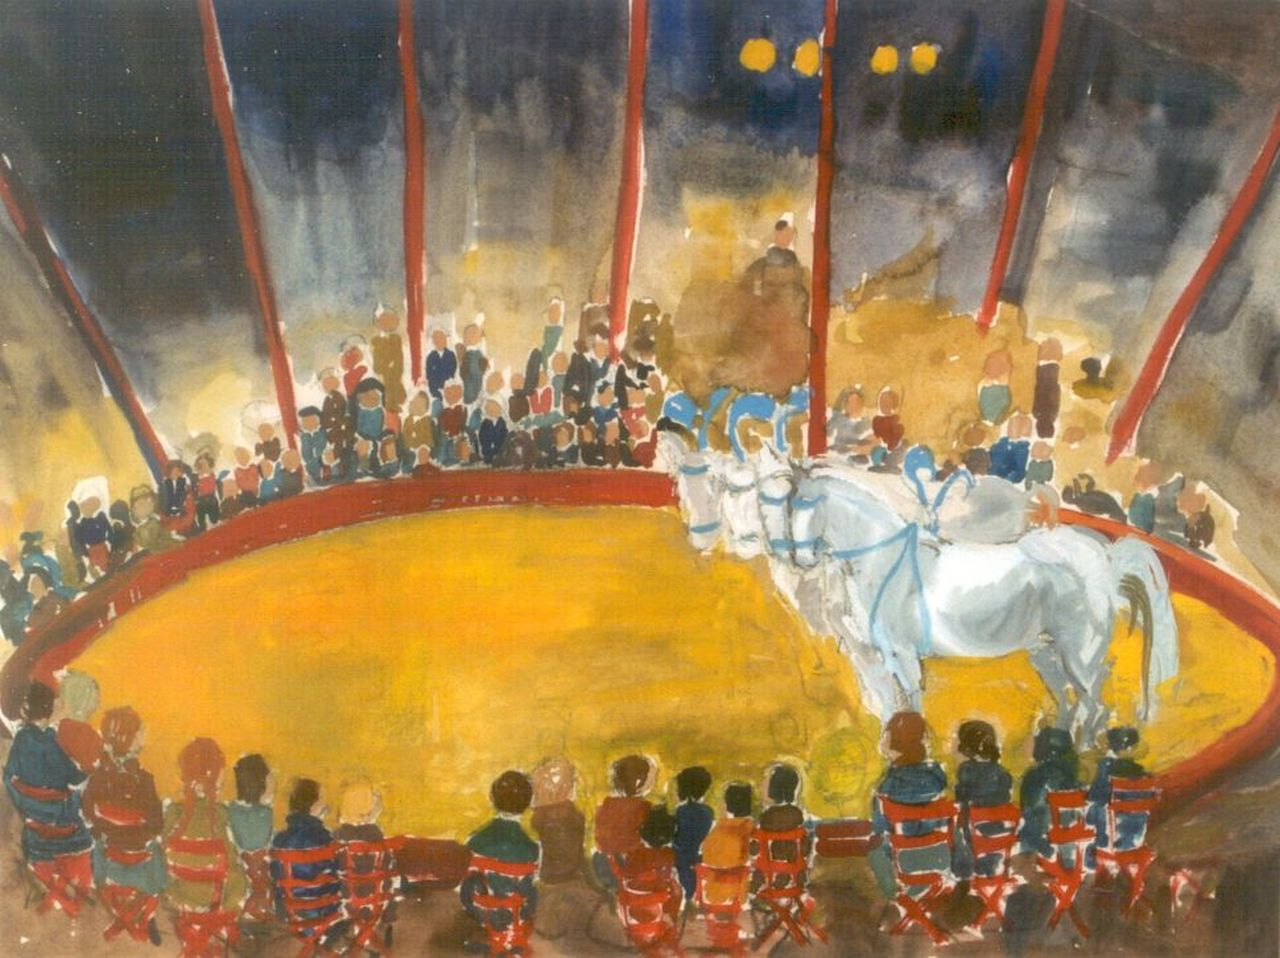 Annemari Eilers | Circus act, watercolour on paper, 51.0 x 67.5 cm, signed l.r.